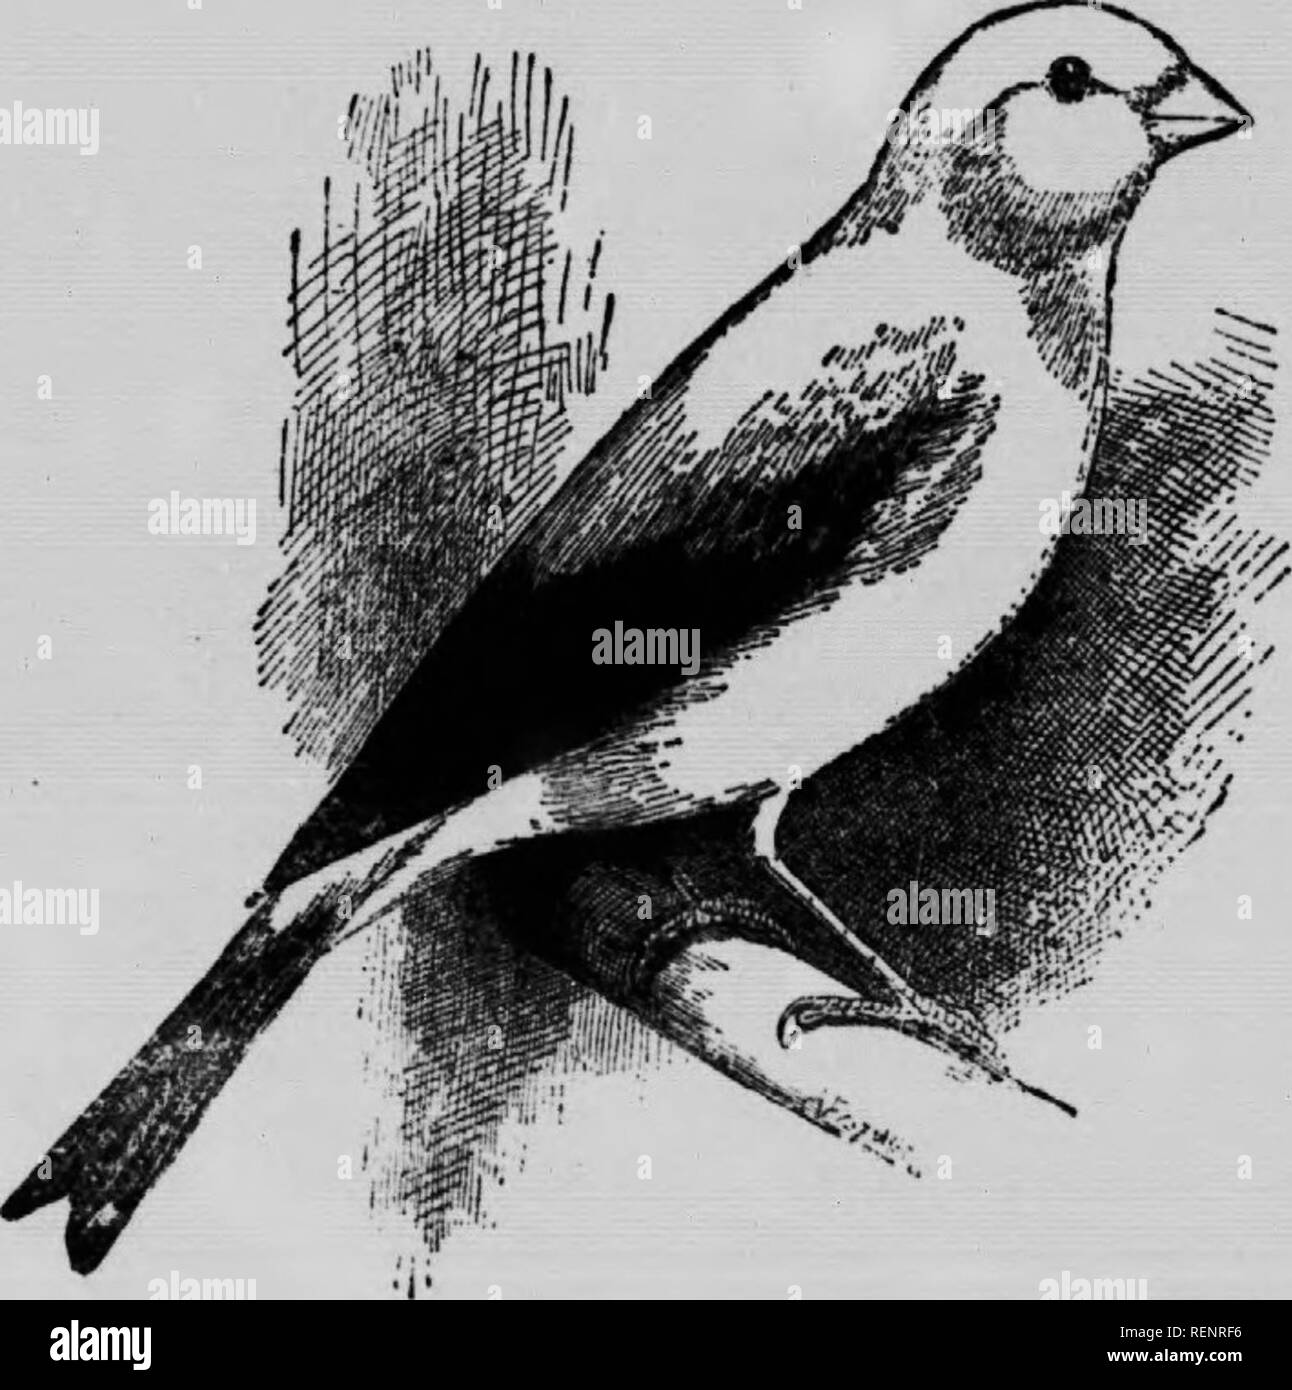 """. The vet. book, or, Animal doctor [microform]. Horses; Bétail; Chevaux; Veterinary medicine; Livestock; Médecine vétérinaire. 130 â Eno's Sweet Cutor OU,"""" the bnt for birds. Wing, Injury to the Birds that have jeen newly caught, and turned into a large aviary, frcfiueutly hurt the joints of their wings by dashing them- selves wildly, m their alarm, against the wire and perches, in some cases so severely as to make themselves bleed, and in others, to dislocate, or even break, the wings. Where tlie inj ury is confined to a bruJae or even an abrasion, of ib» ebin, no treatment will be  - Stock Image"""